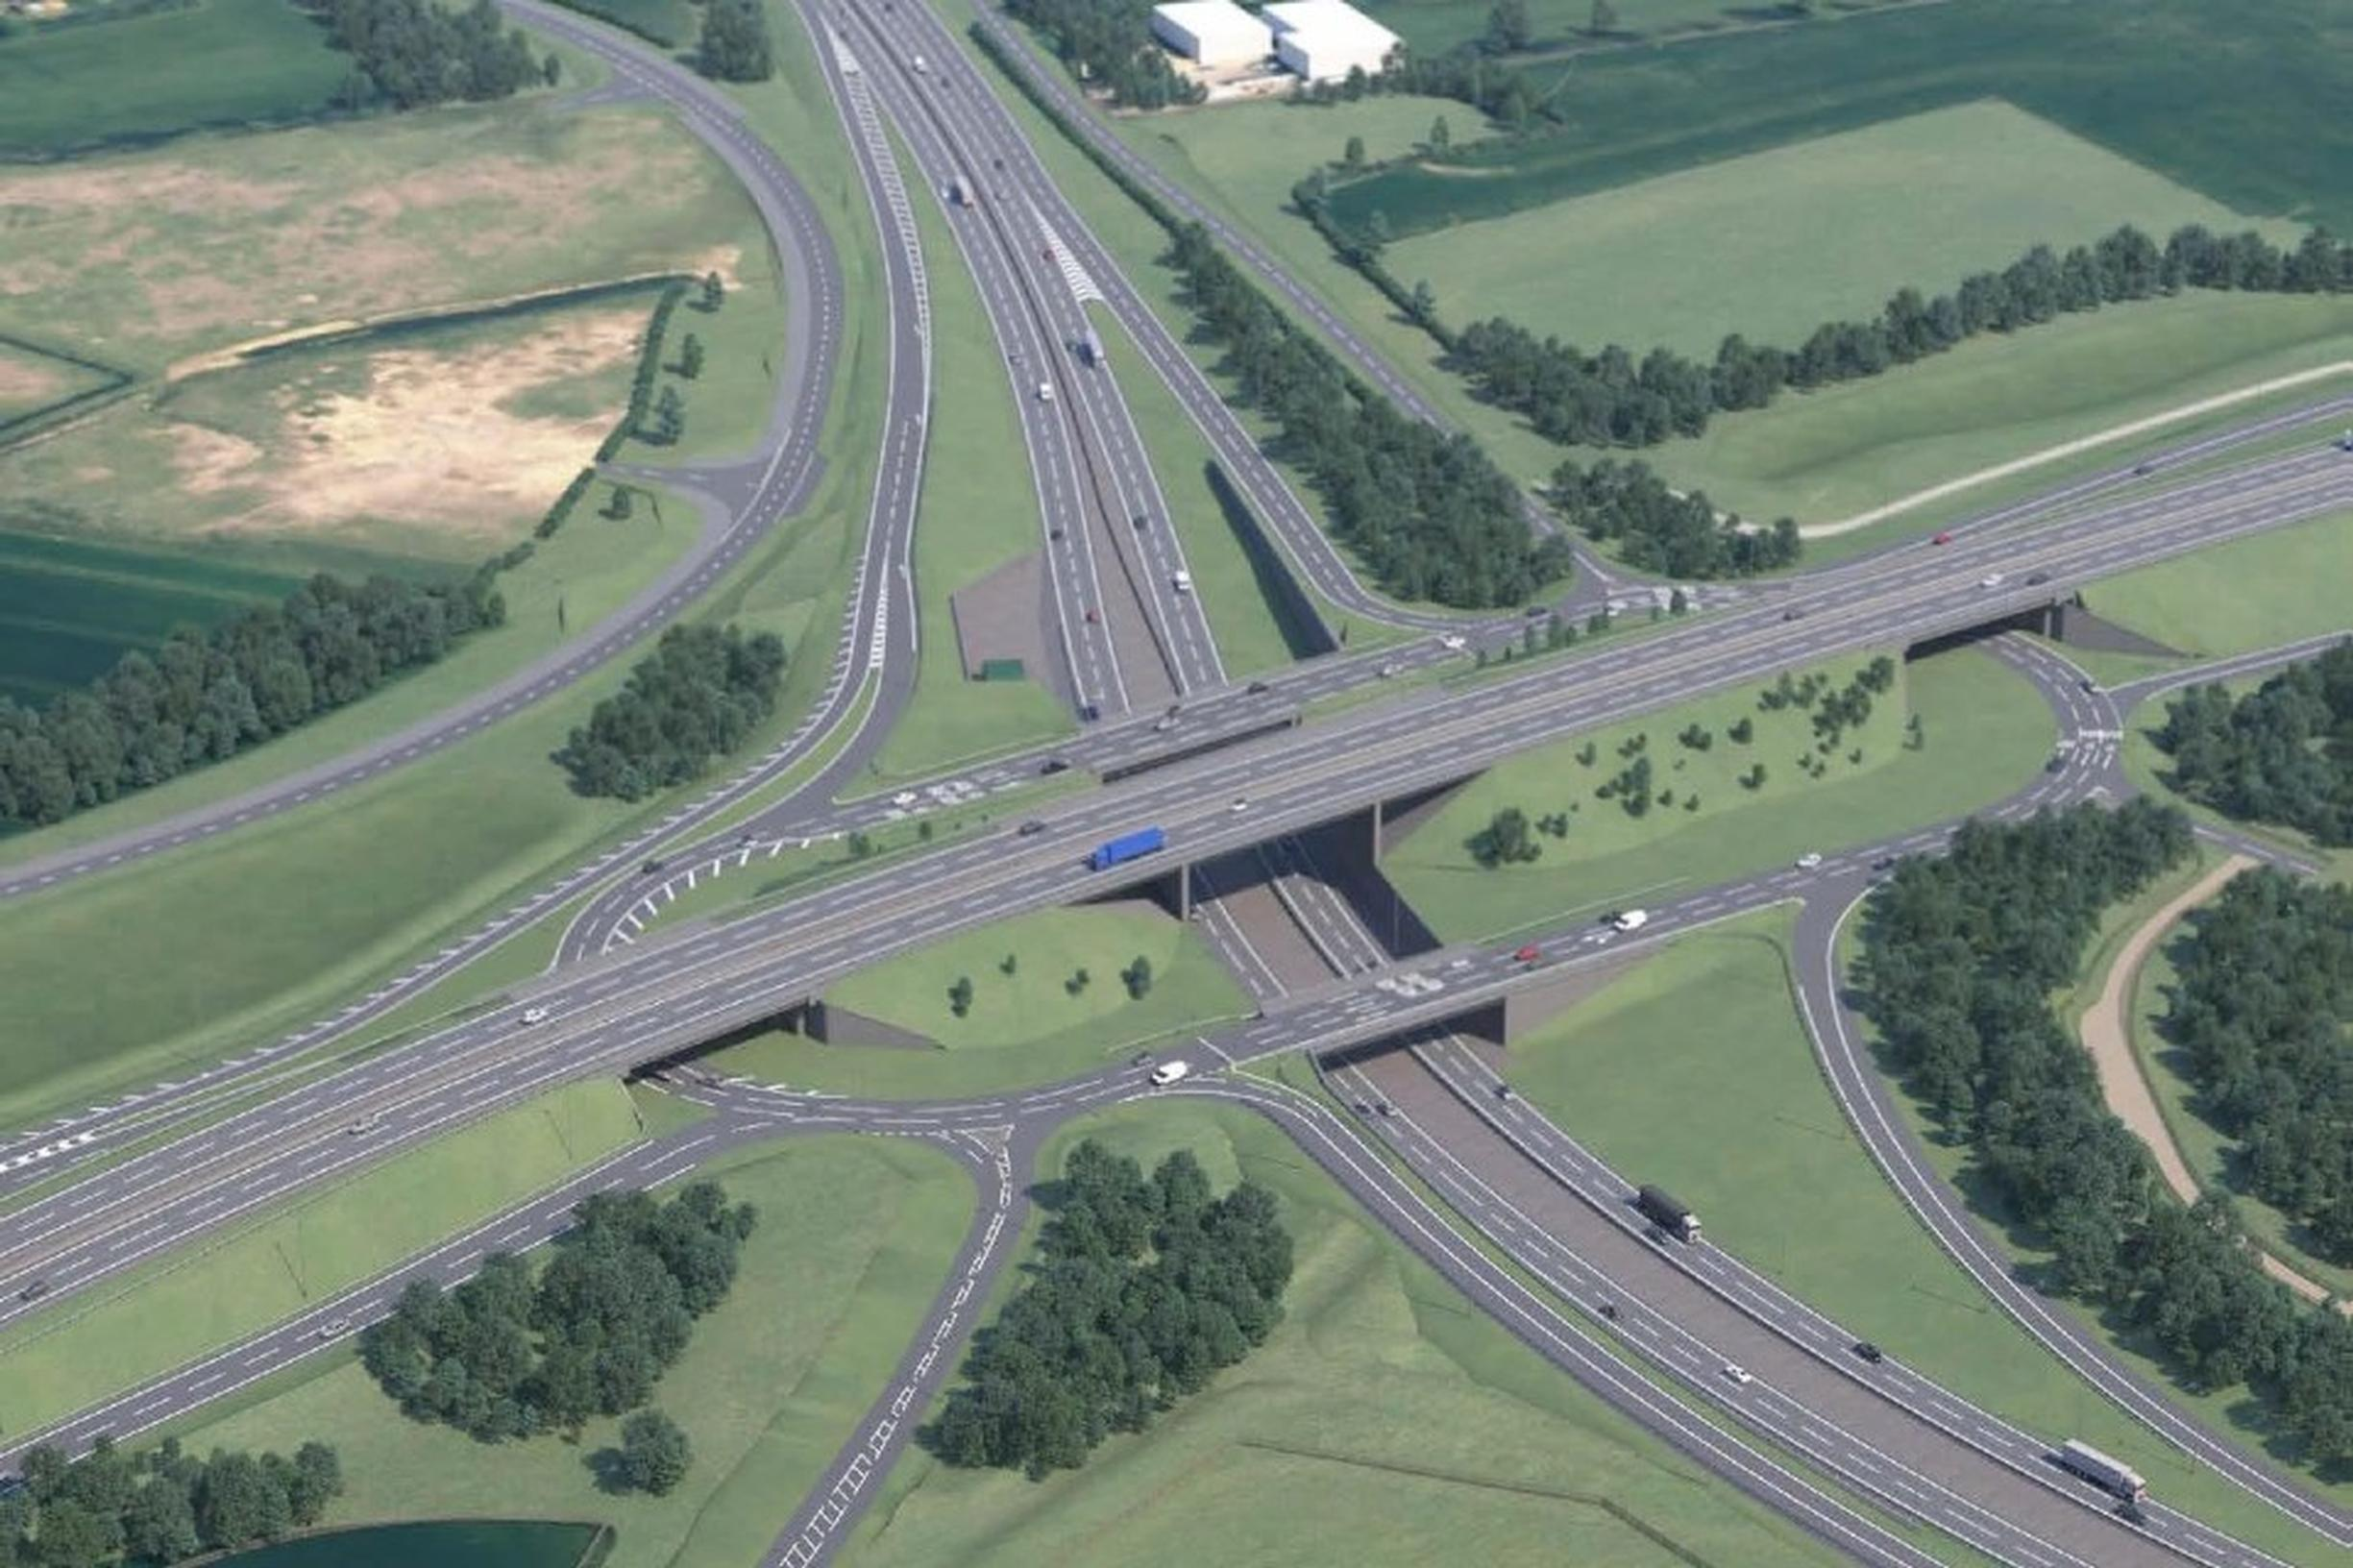 The proposed A428 Black Cat to Caxton Gibbet improvements